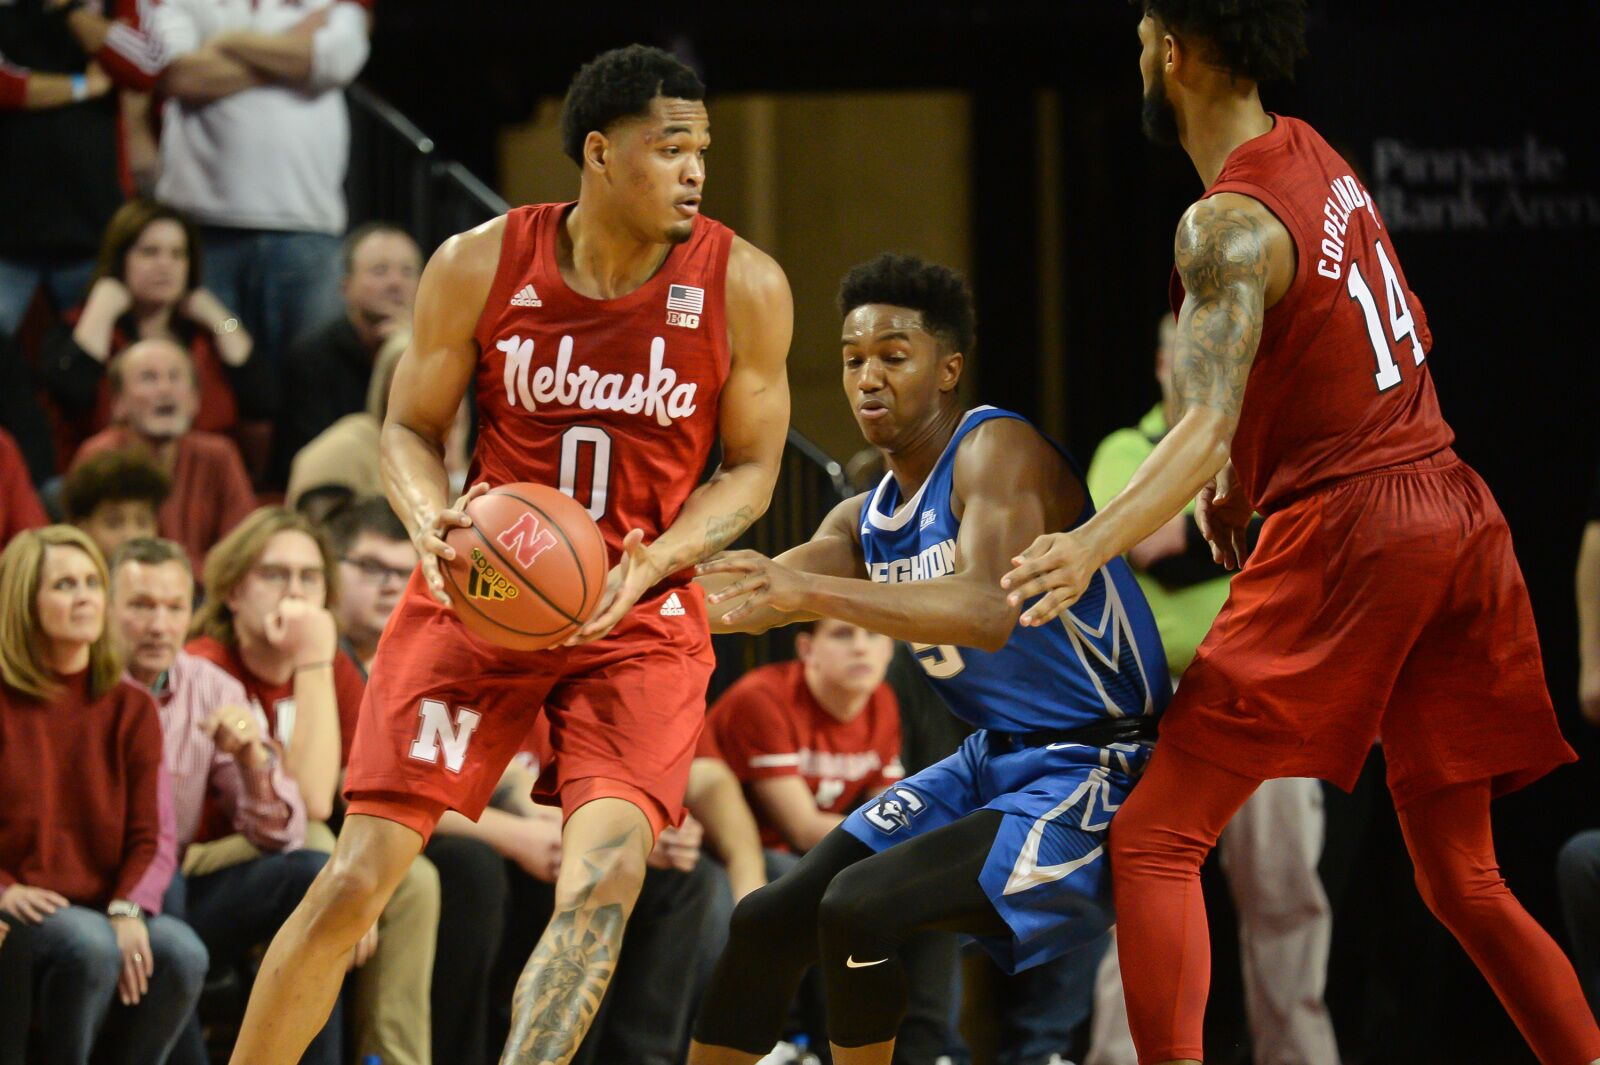 Nebraska Basketball: How to watch and what to know for Oklahoma State